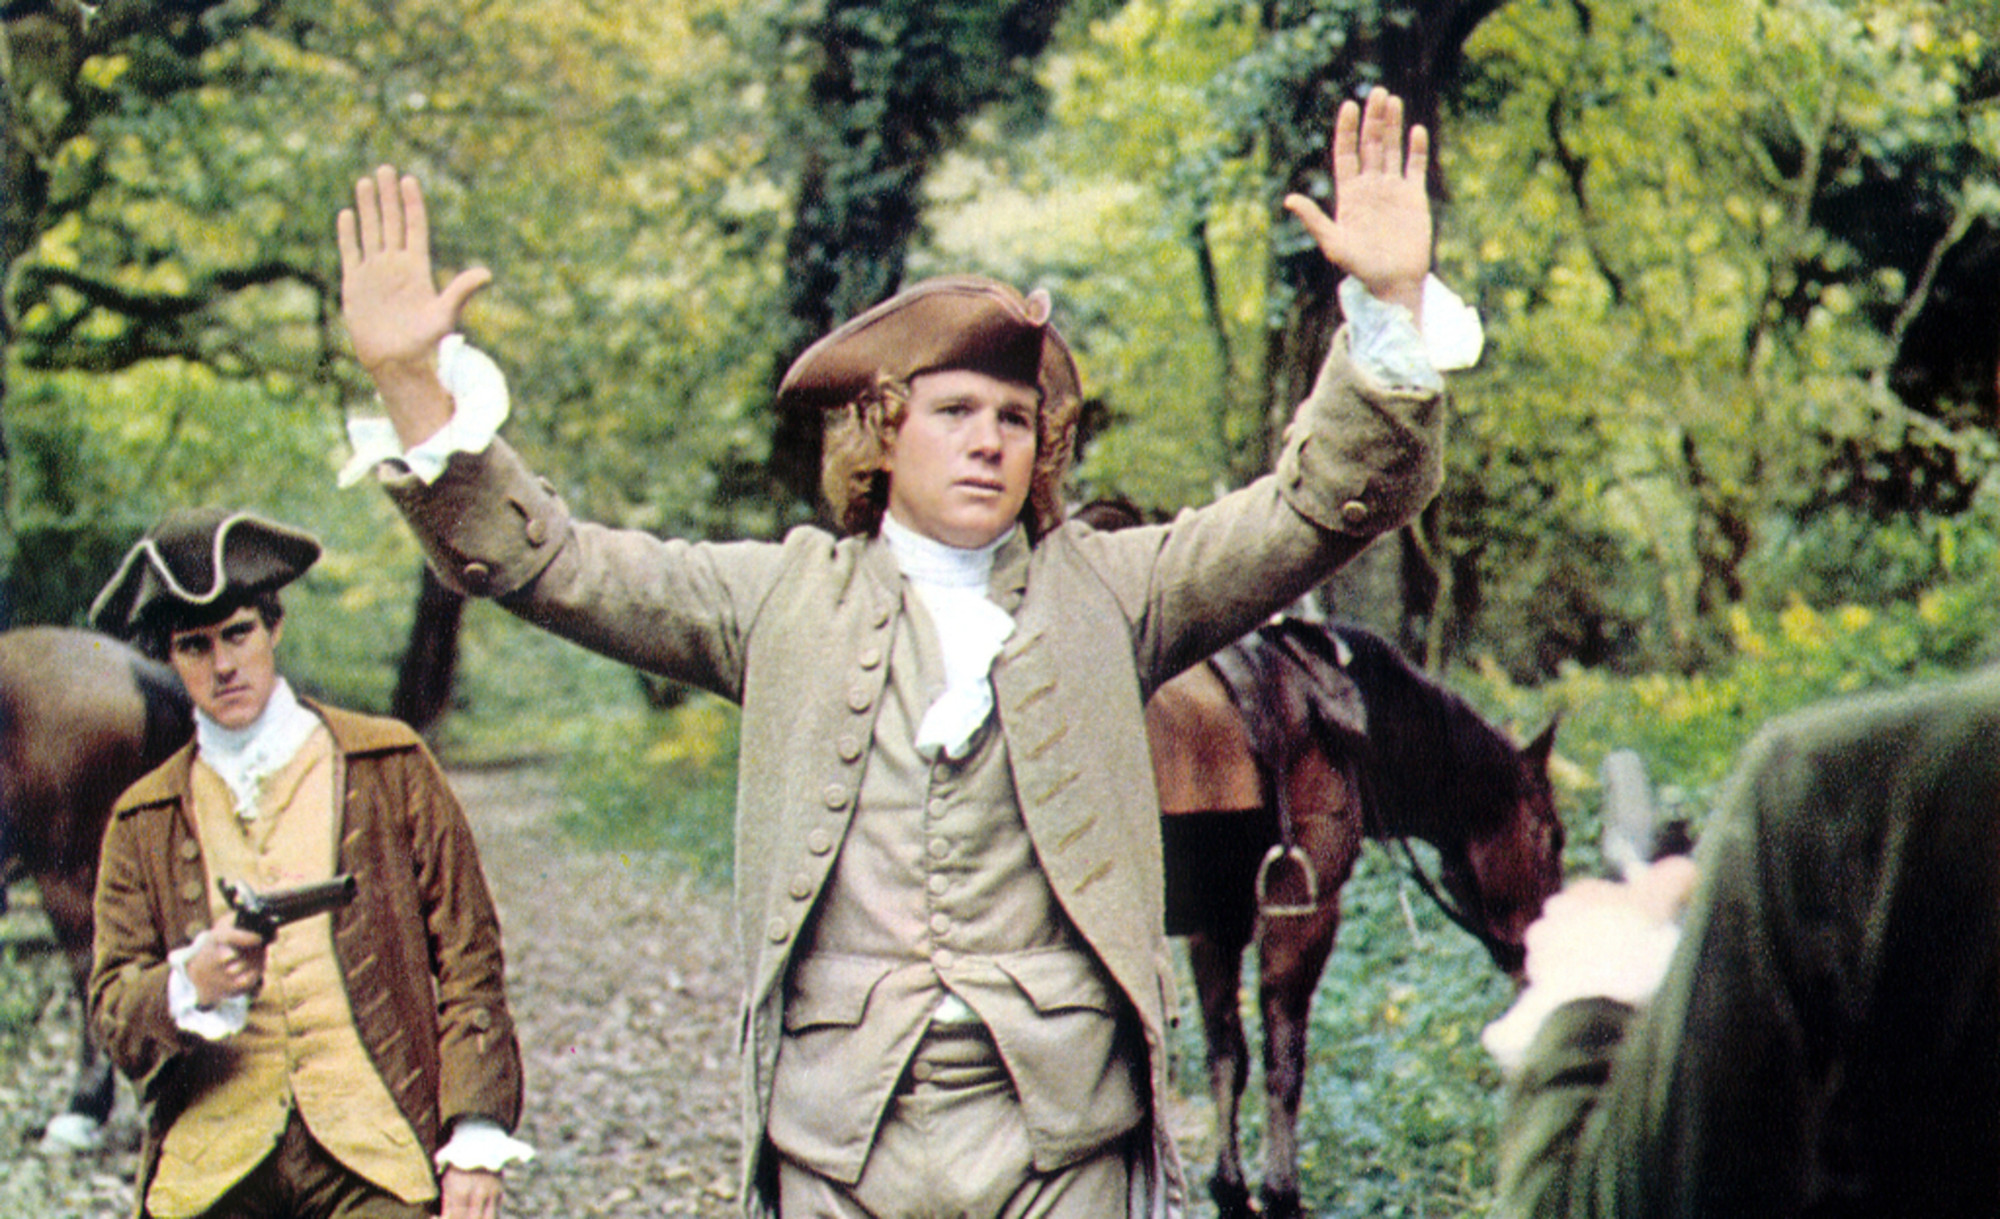 Barry Lyndon. 1975. Great Britain. Written and directed by Stanley Kubrick, from the novel by William Makepeace Thackeray